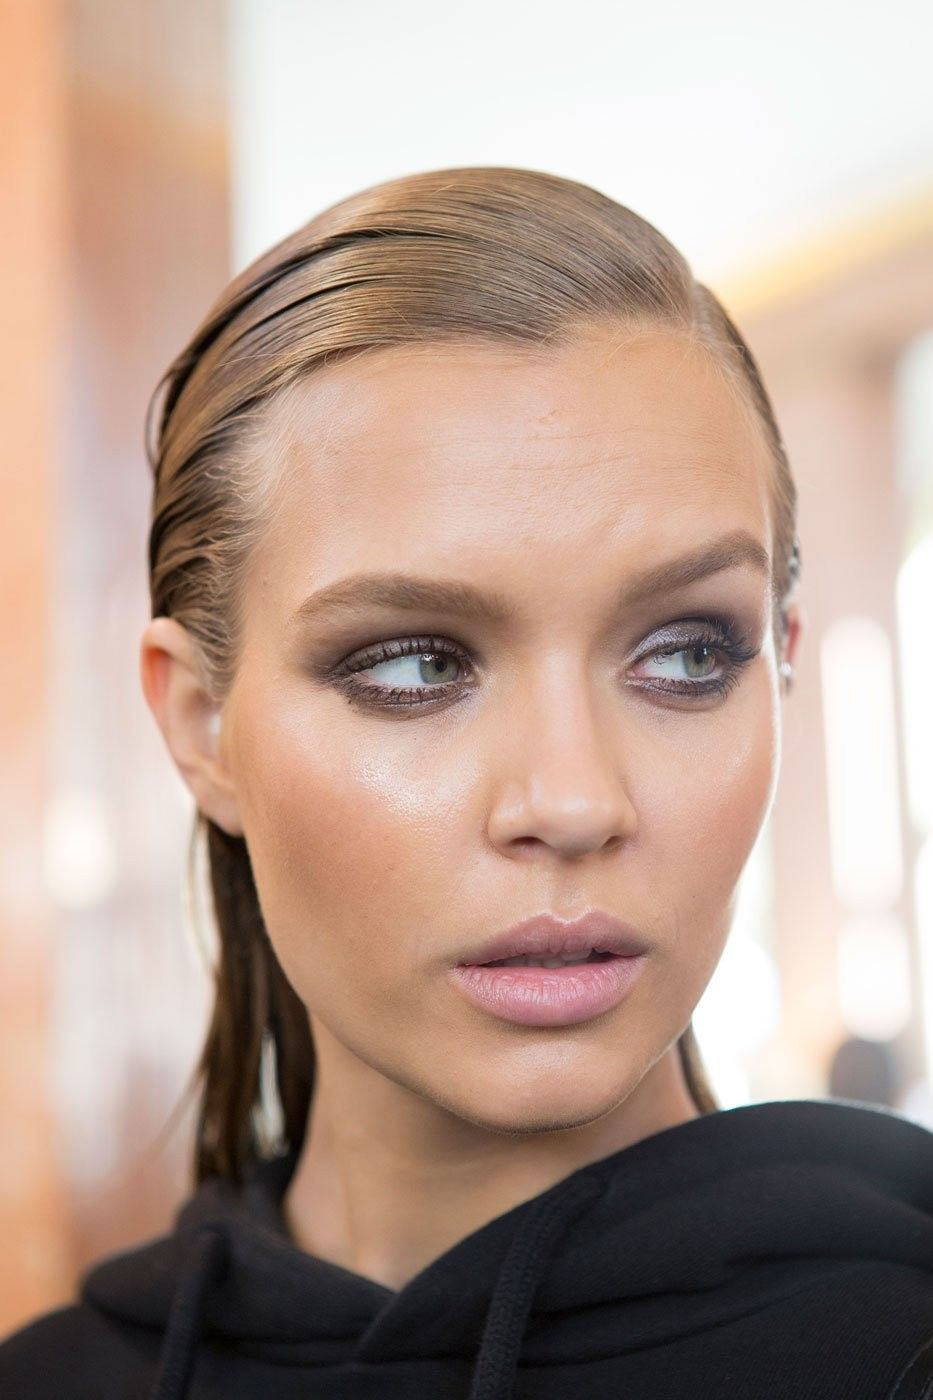 3_the_new_eyeliner_balmain_top_5_beauty_trends_ss_2017_fabulous_muses